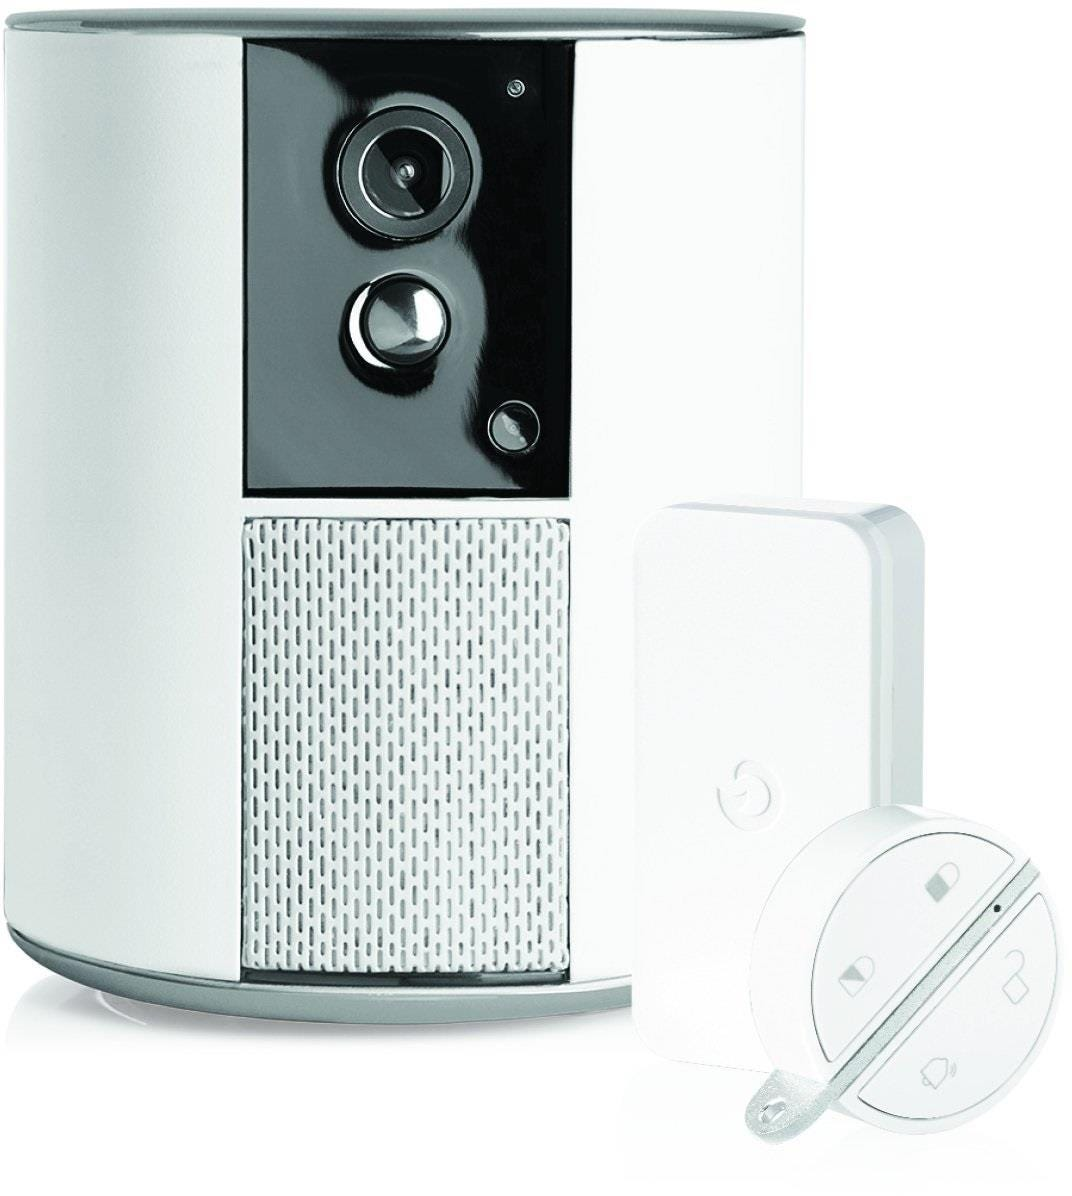 Somfy One+ Indoor Wireless Full HD Night-Vision Security Camera - White